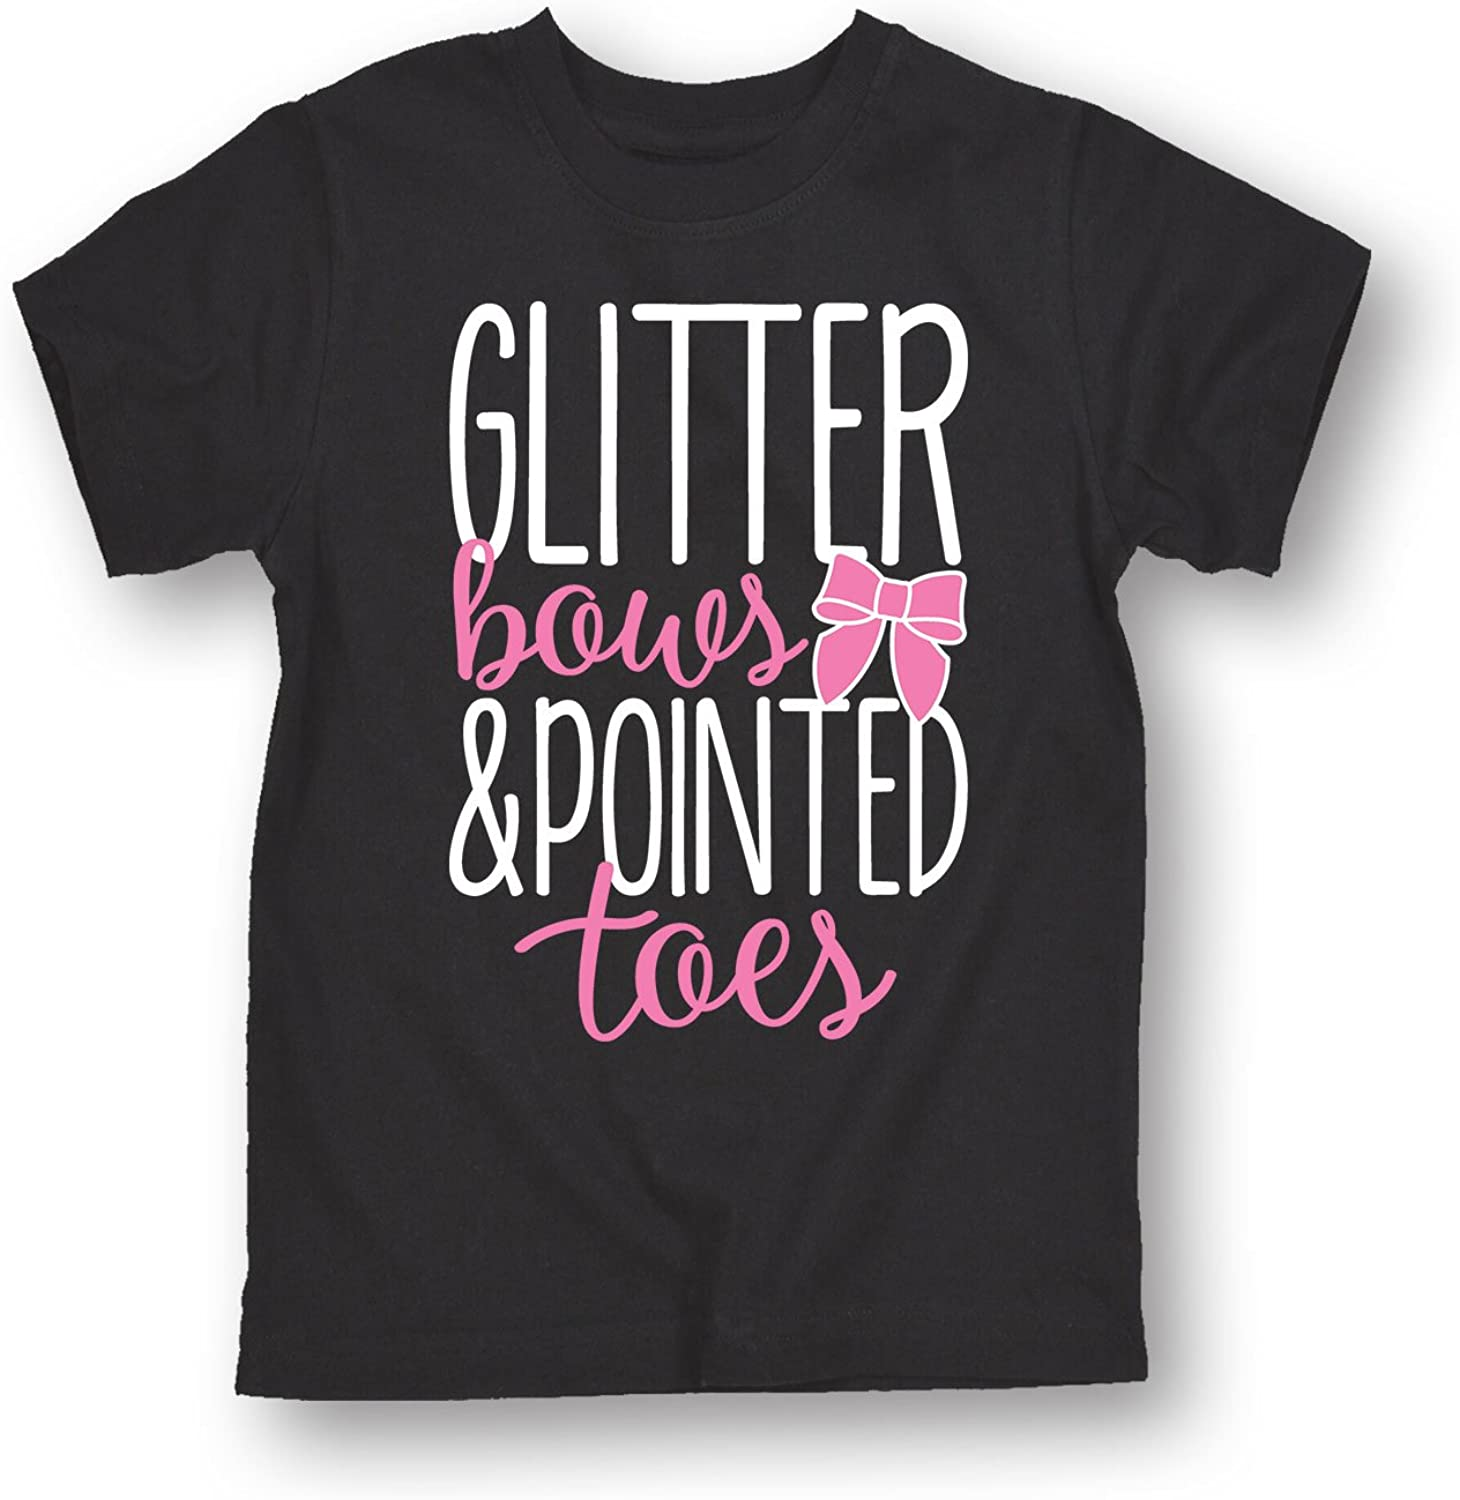 Instant Message Glitter Bows and Pointed Toes - Youth Short Sleeve Graphic T-Shirt